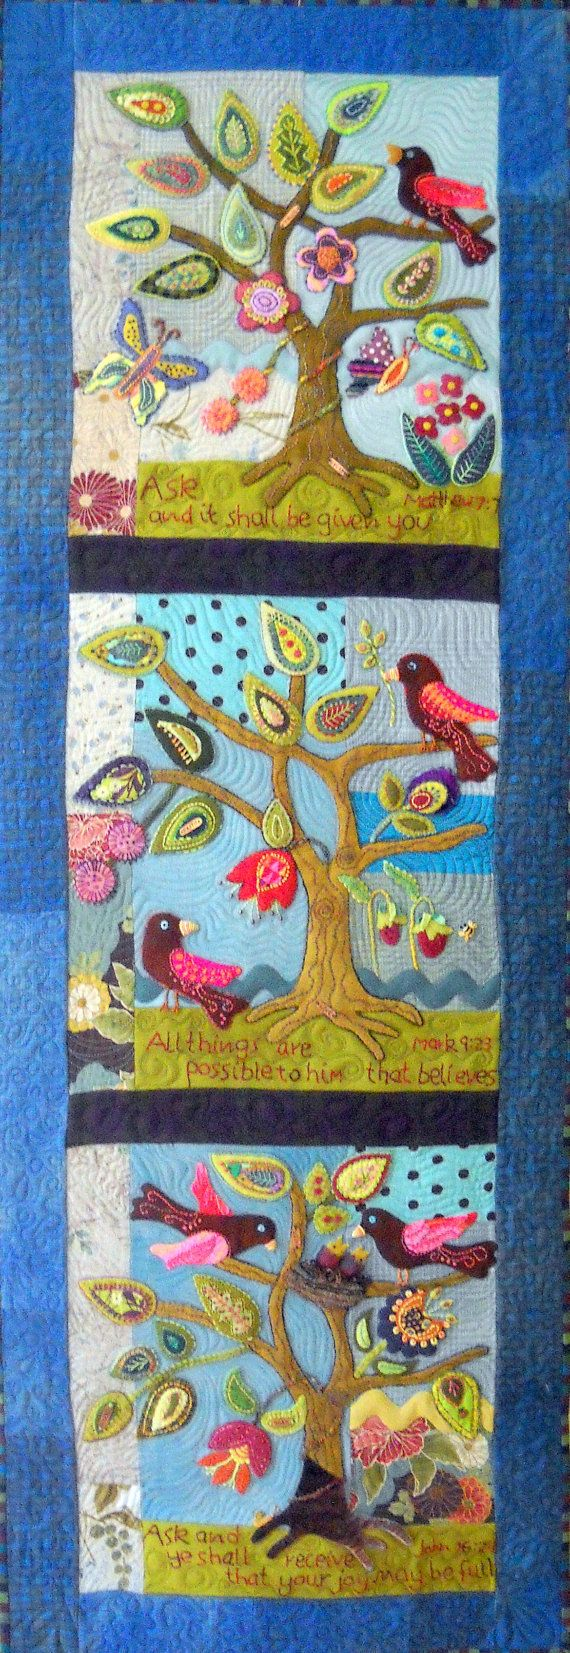 Ask-Believe-Receive quilted wall art by Kerry Stitch designs